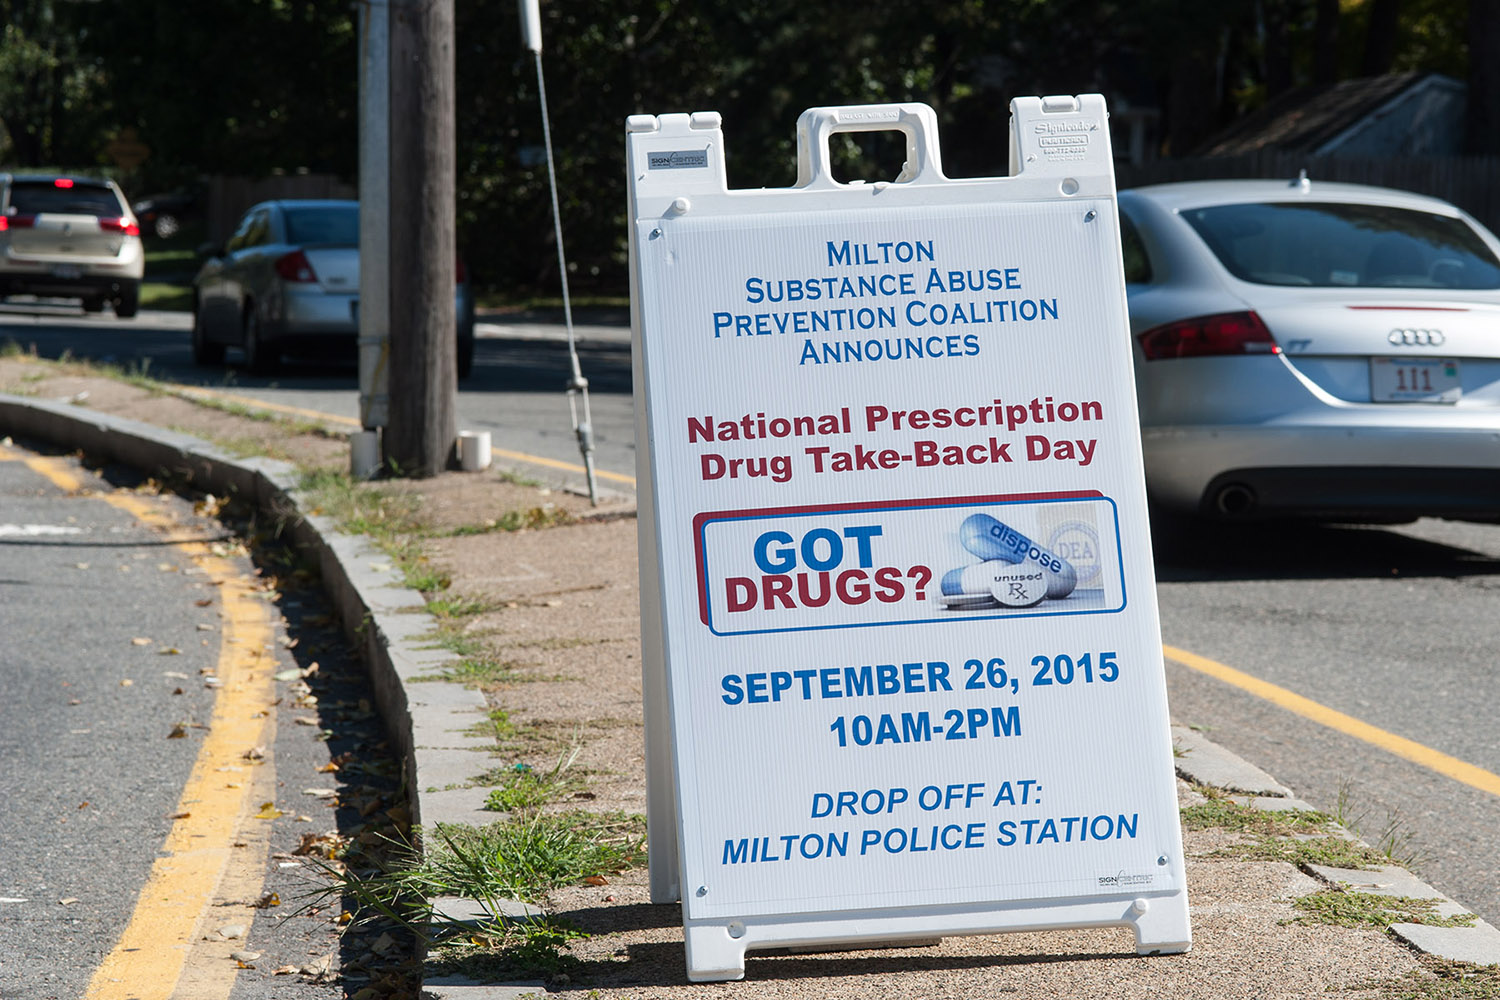 The Milton Coalition placed highly visible signs throughout town to raise awareness of Milton't participation in the national Prescription Drug Take-Back Day program.